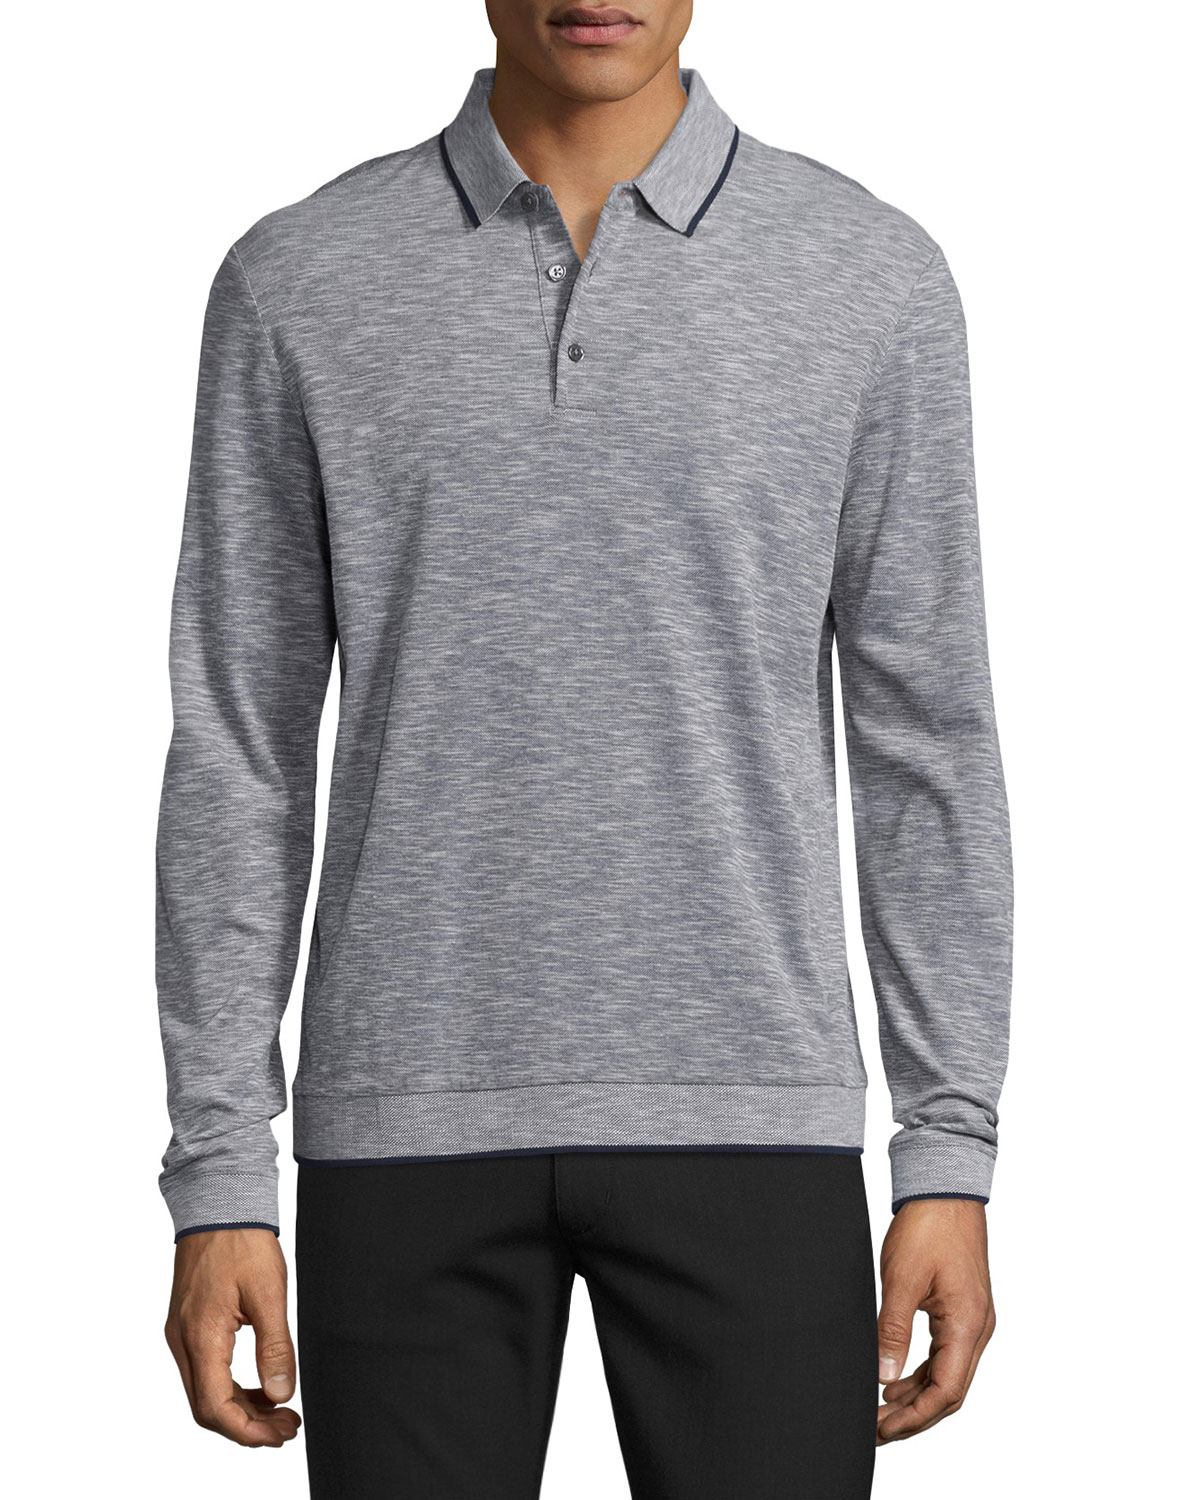 Petrik Long-Sleeve Pique Polo Shirt w/Contrast Tipping, White Multi(?)